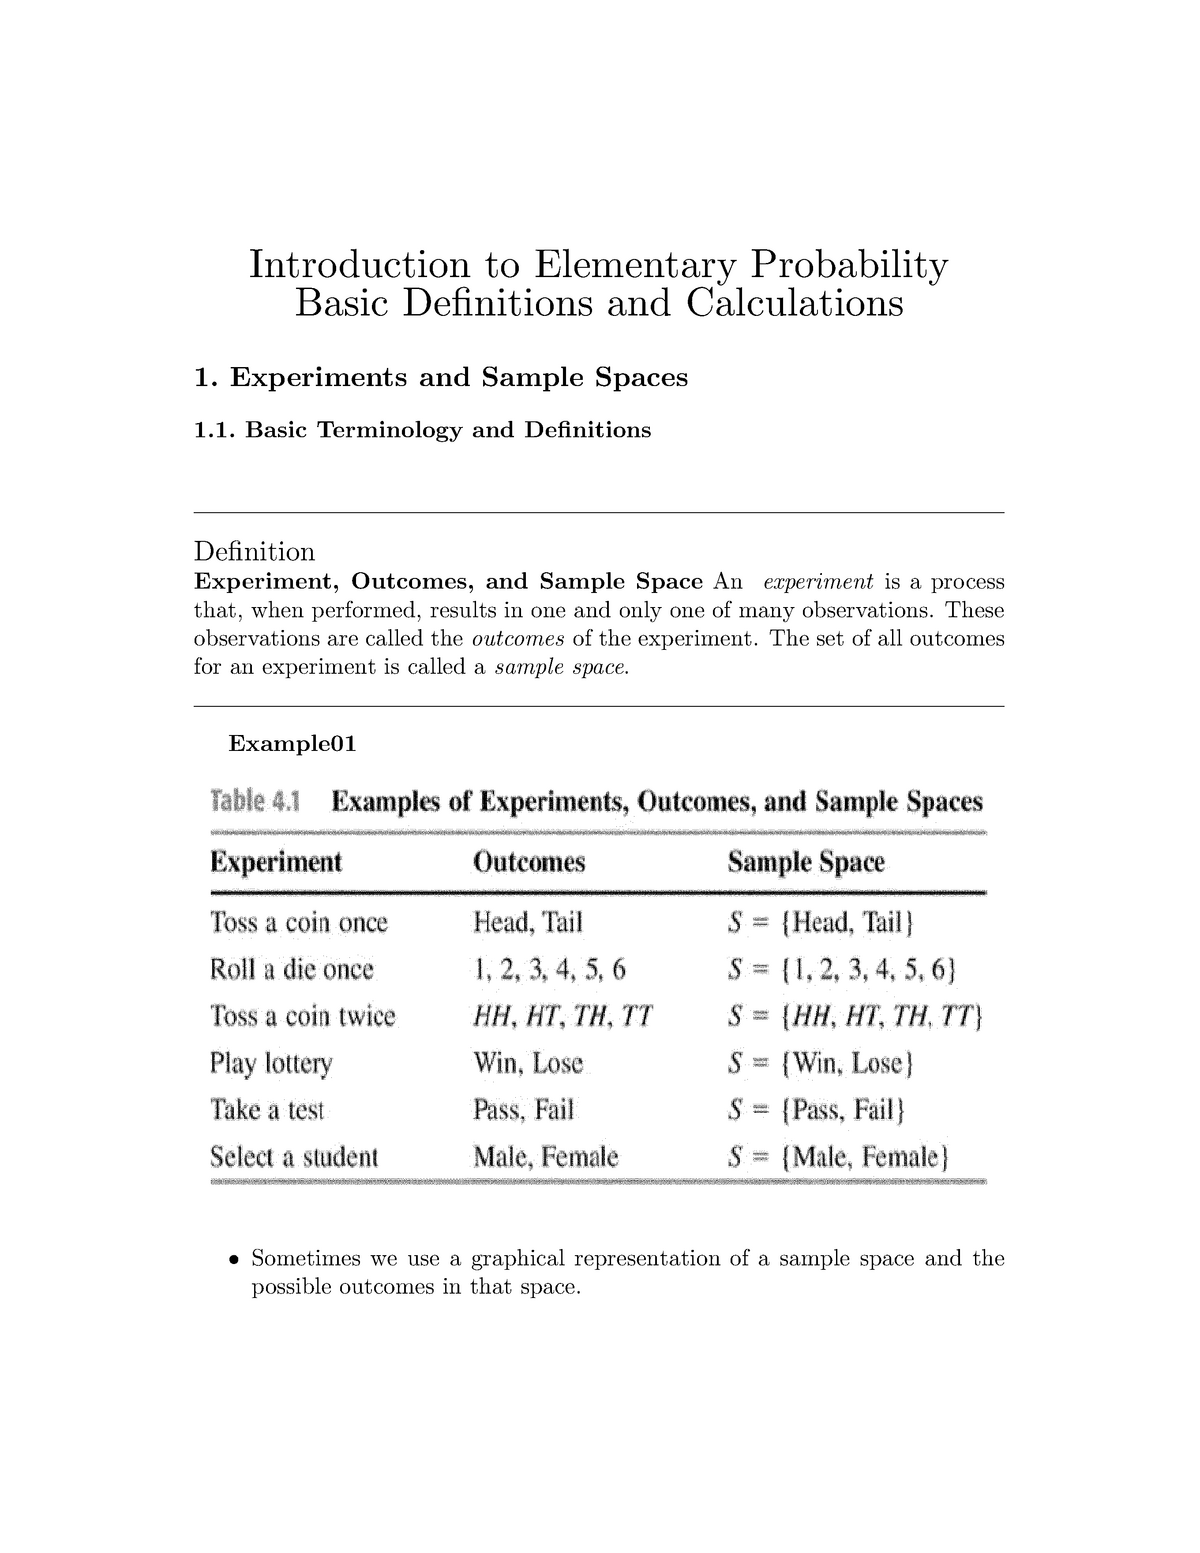 Lecture notes, lecture 3 - Elementary probability part 1